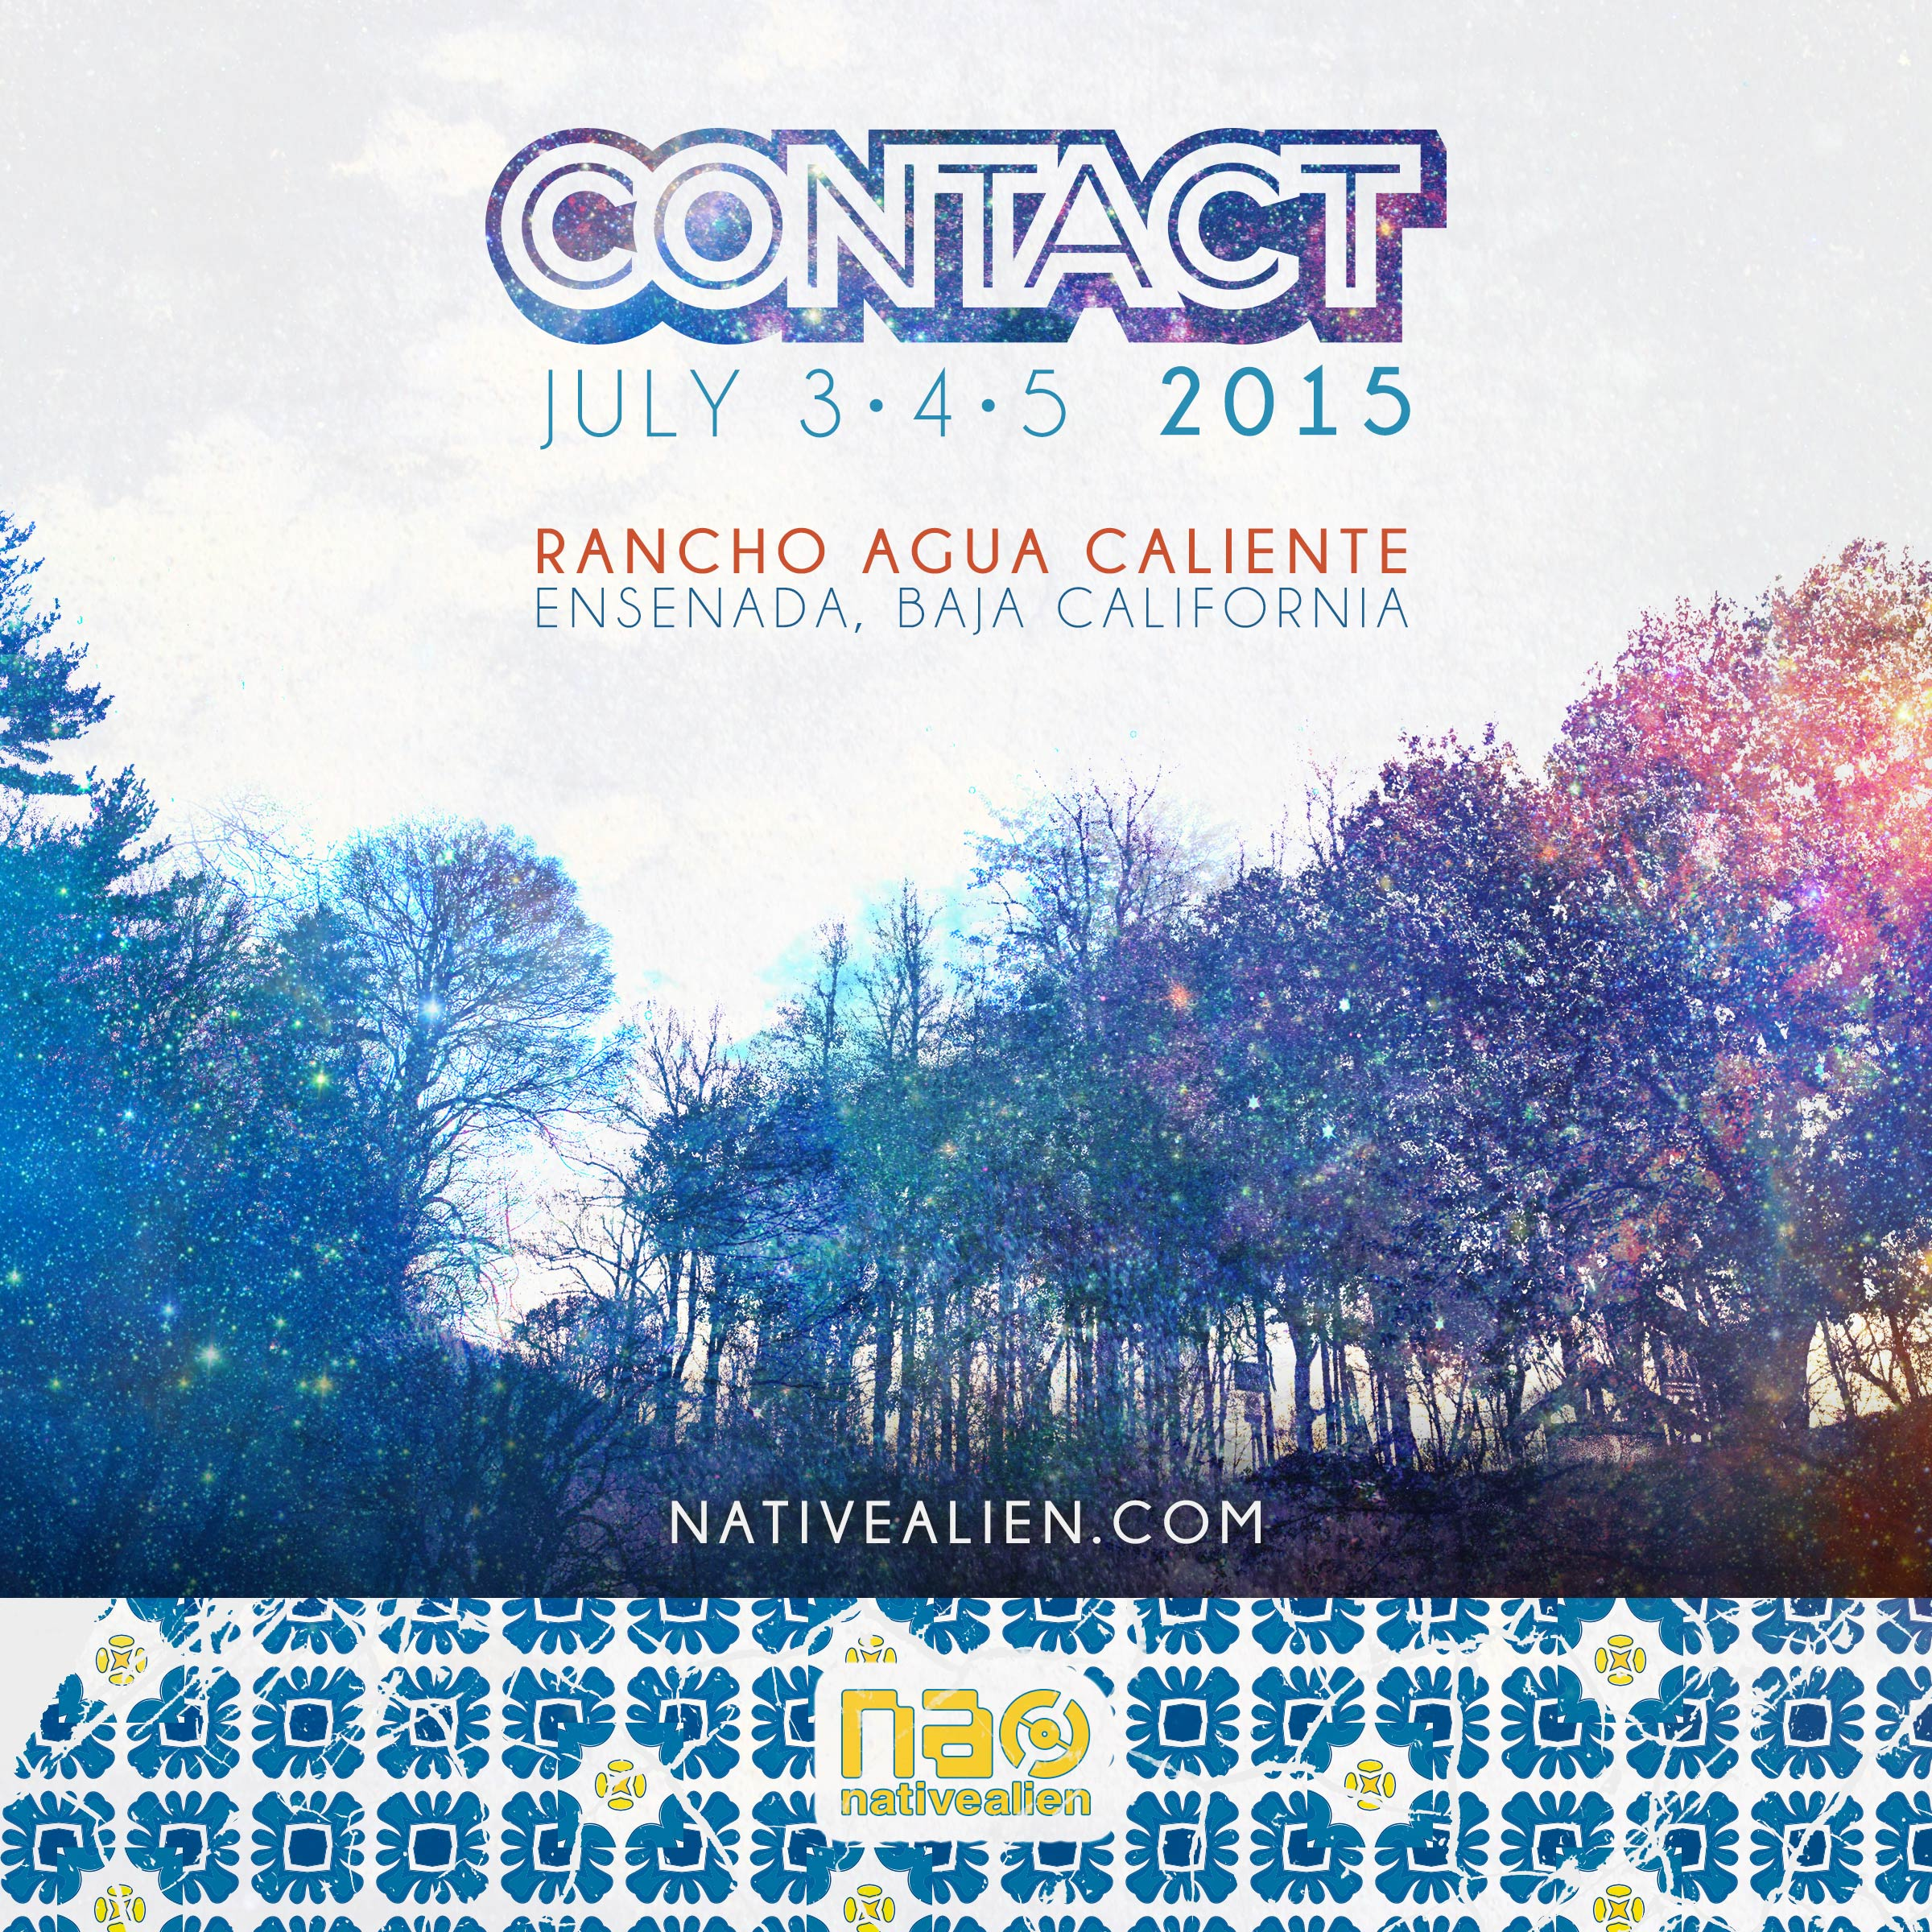 native-alien-contact-2015-3